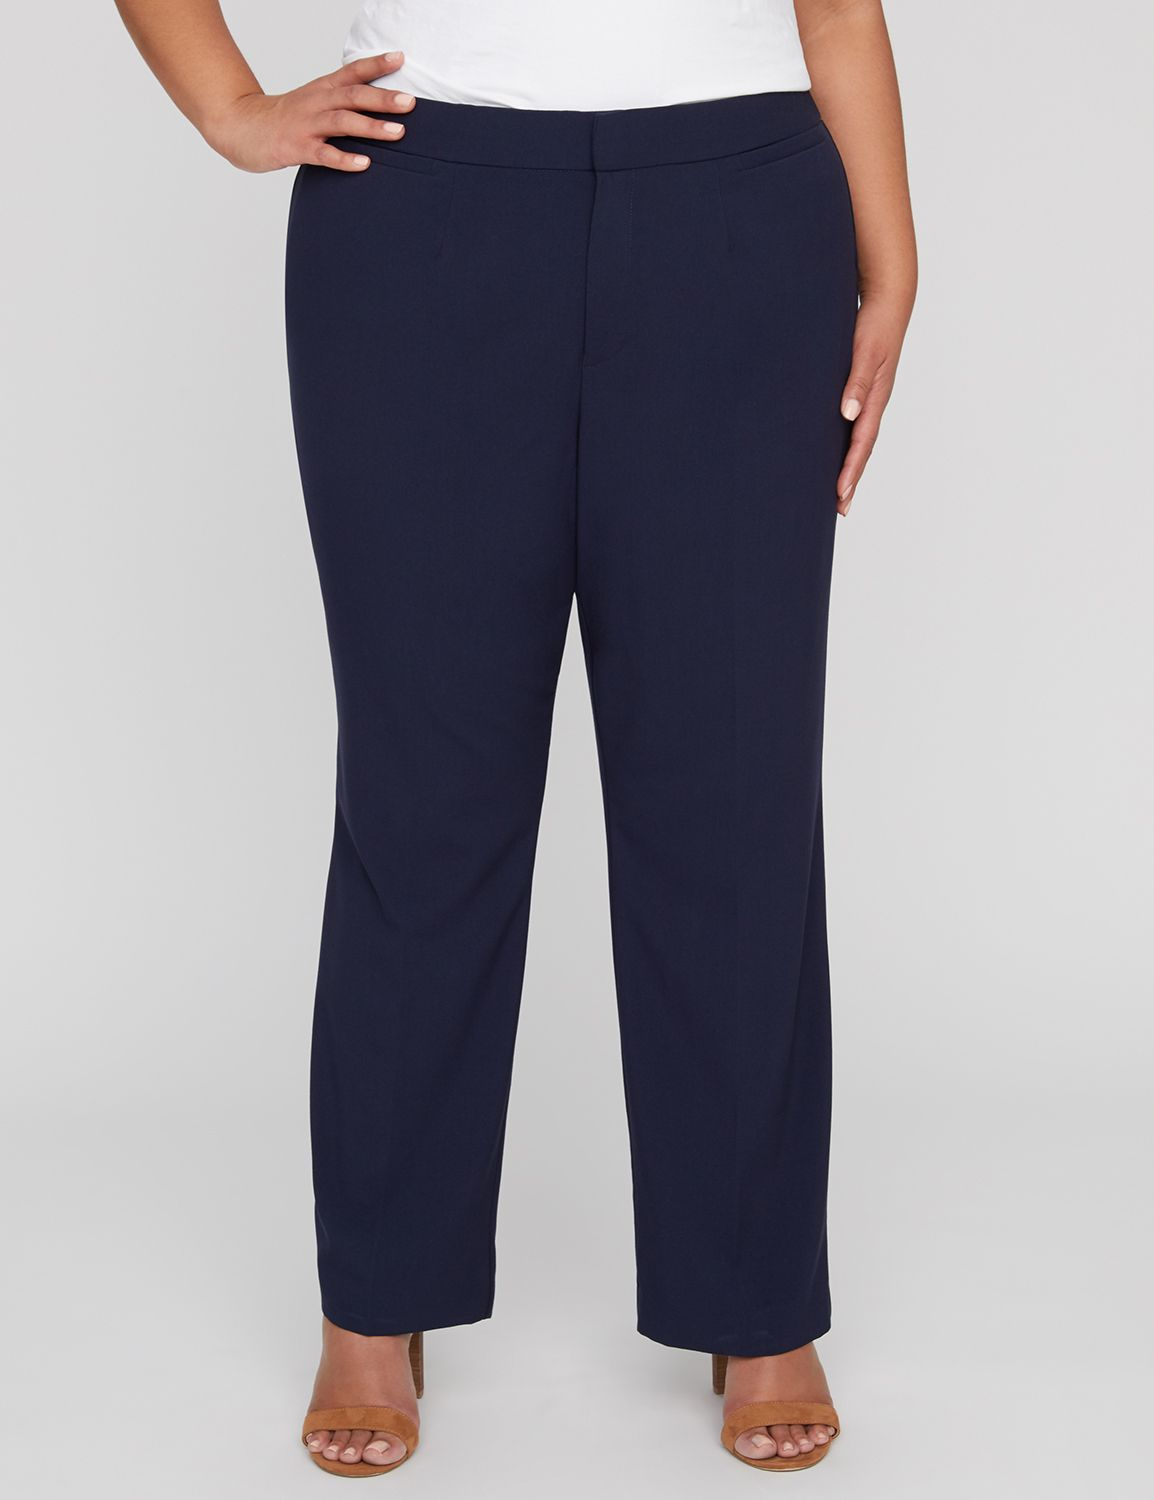 Right Fit Pant (Curvy) Right Fit Pant (Curvy) MP-300043652